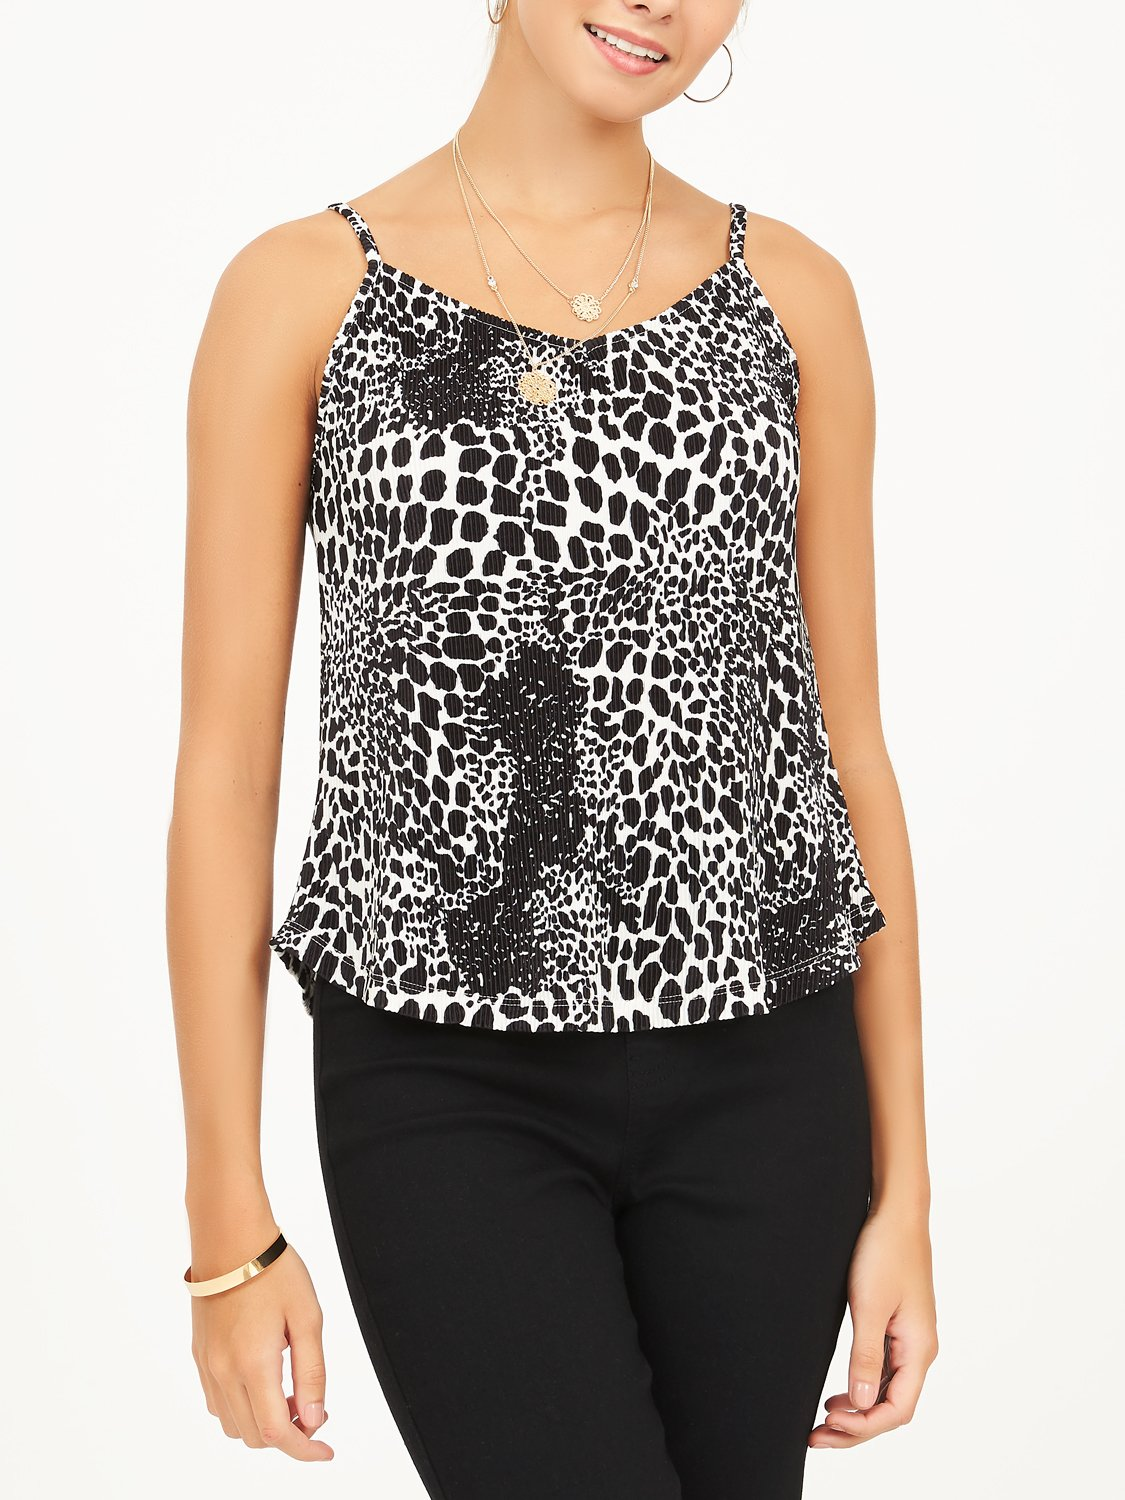 Animal Print Spaghetti Tank Top